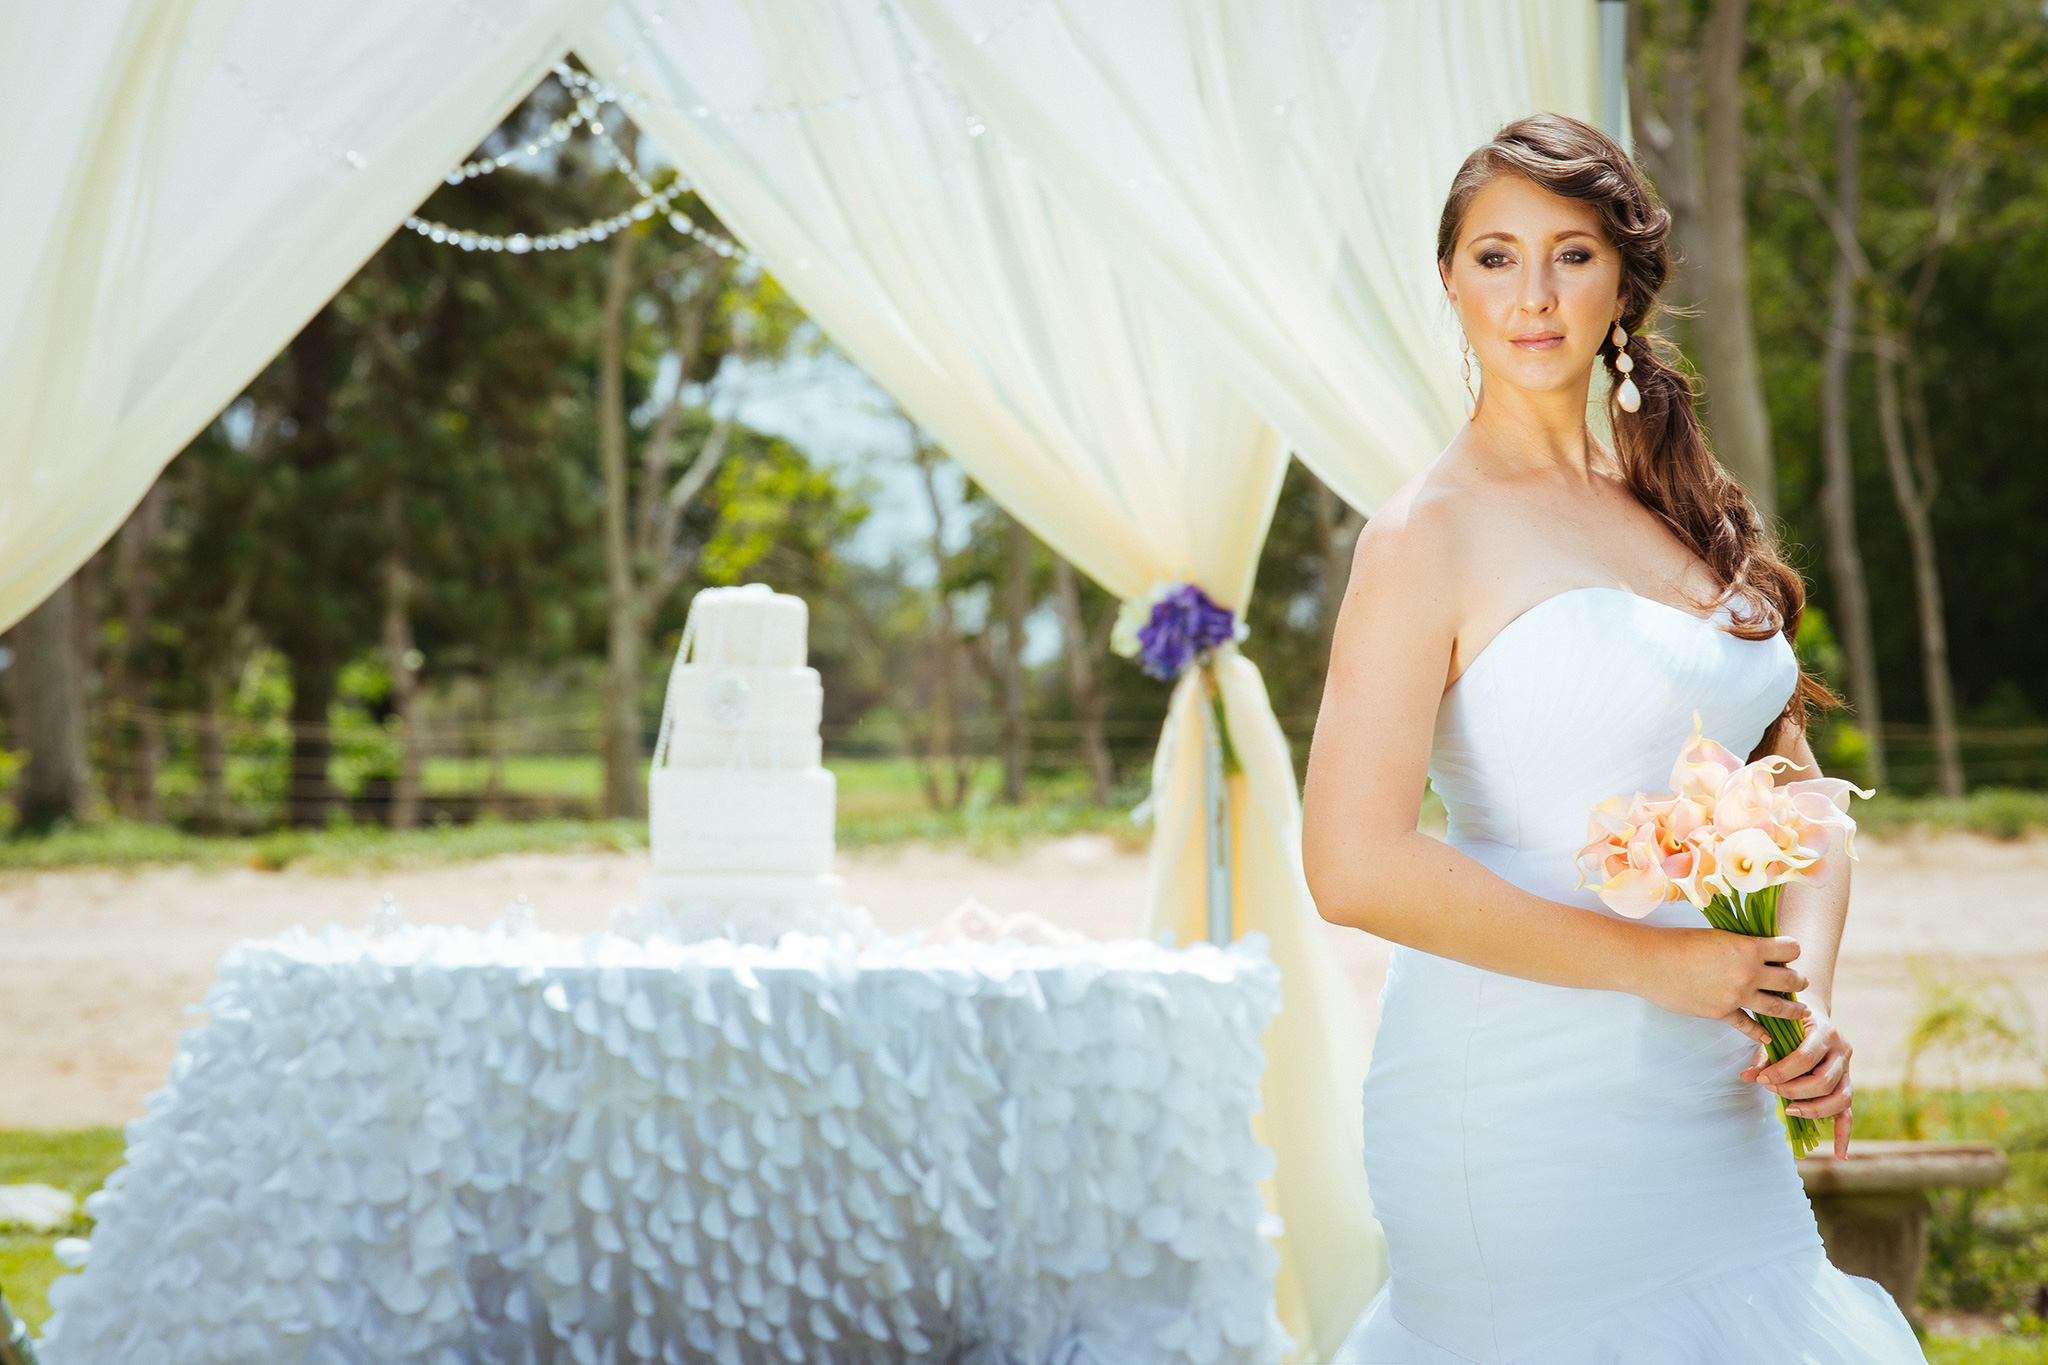 wedding chair covers preston xrocker gaming belle weddings and events for all your rentals